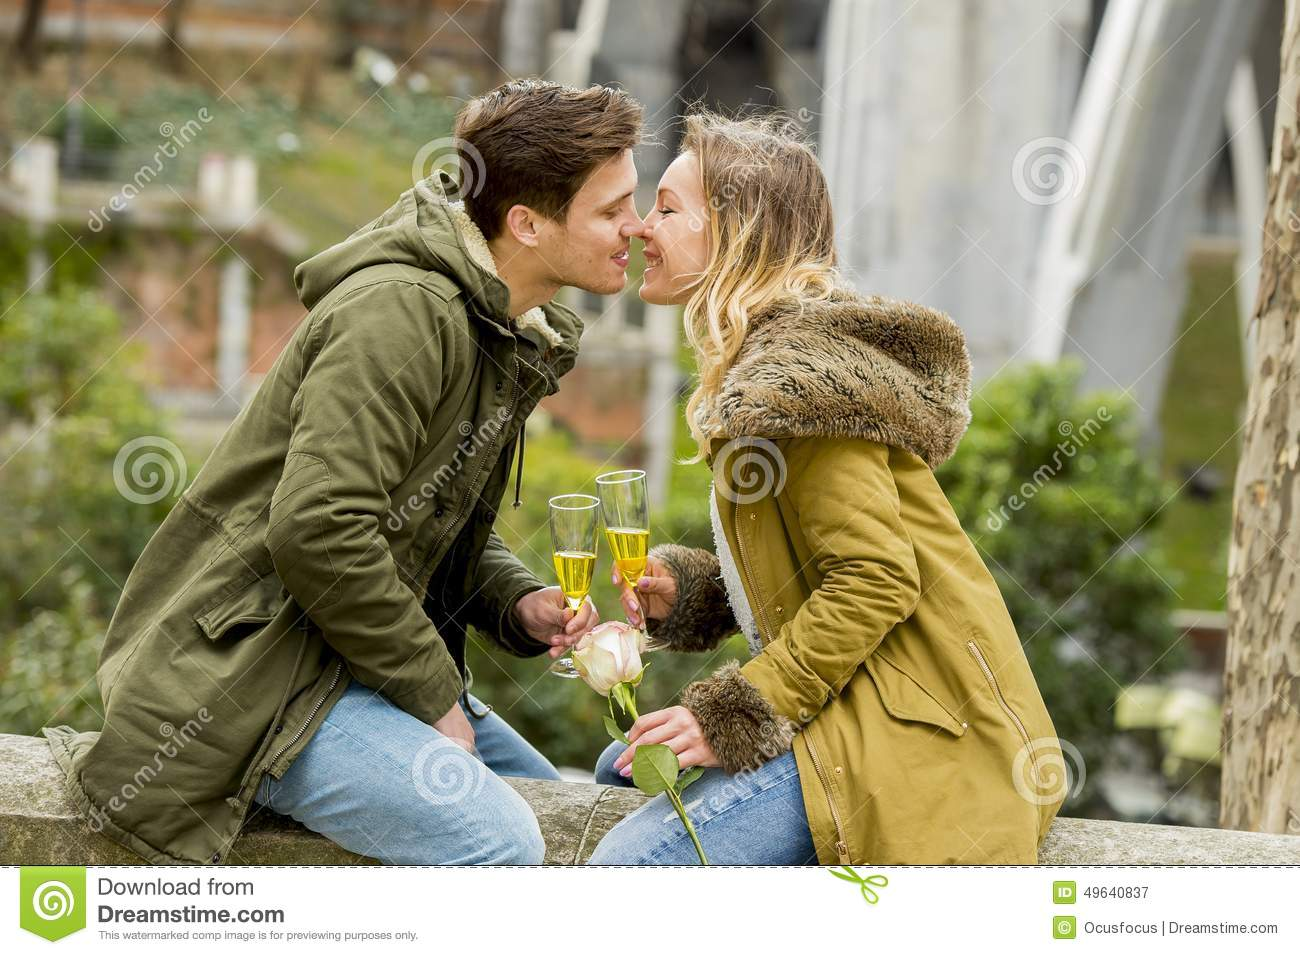 young sweet couple in love kissing tenderly on street celebrating Valentines day or anniversary cheering in Champagne